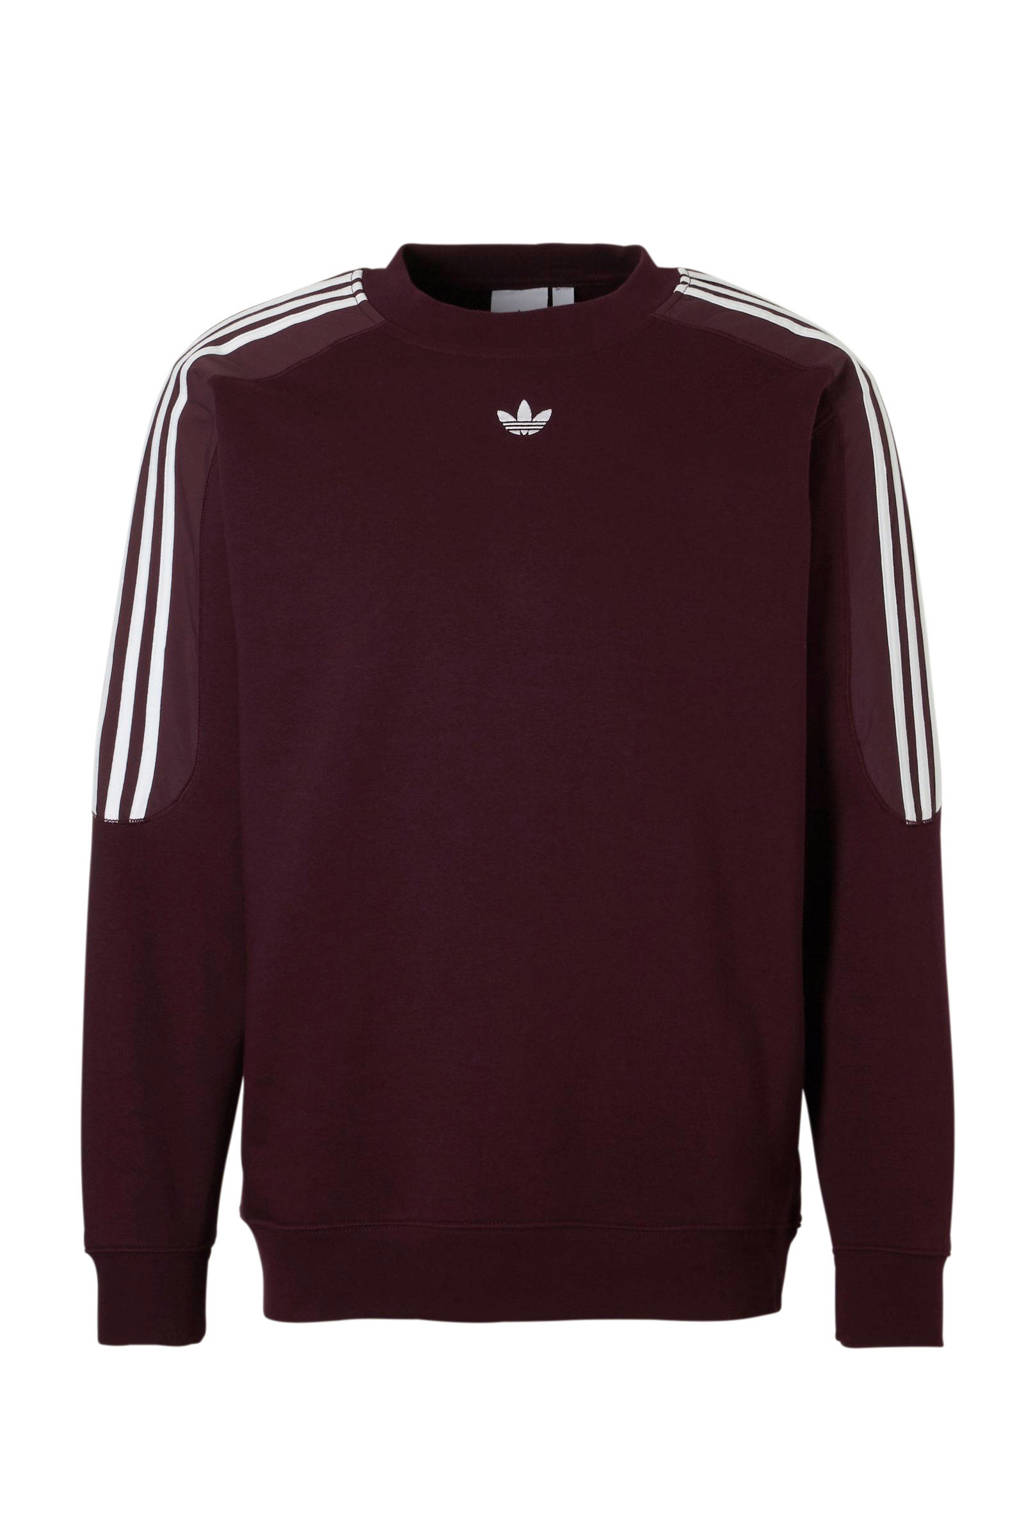 adidas originals   sportsweater donkerrood, Donkerrood/wit